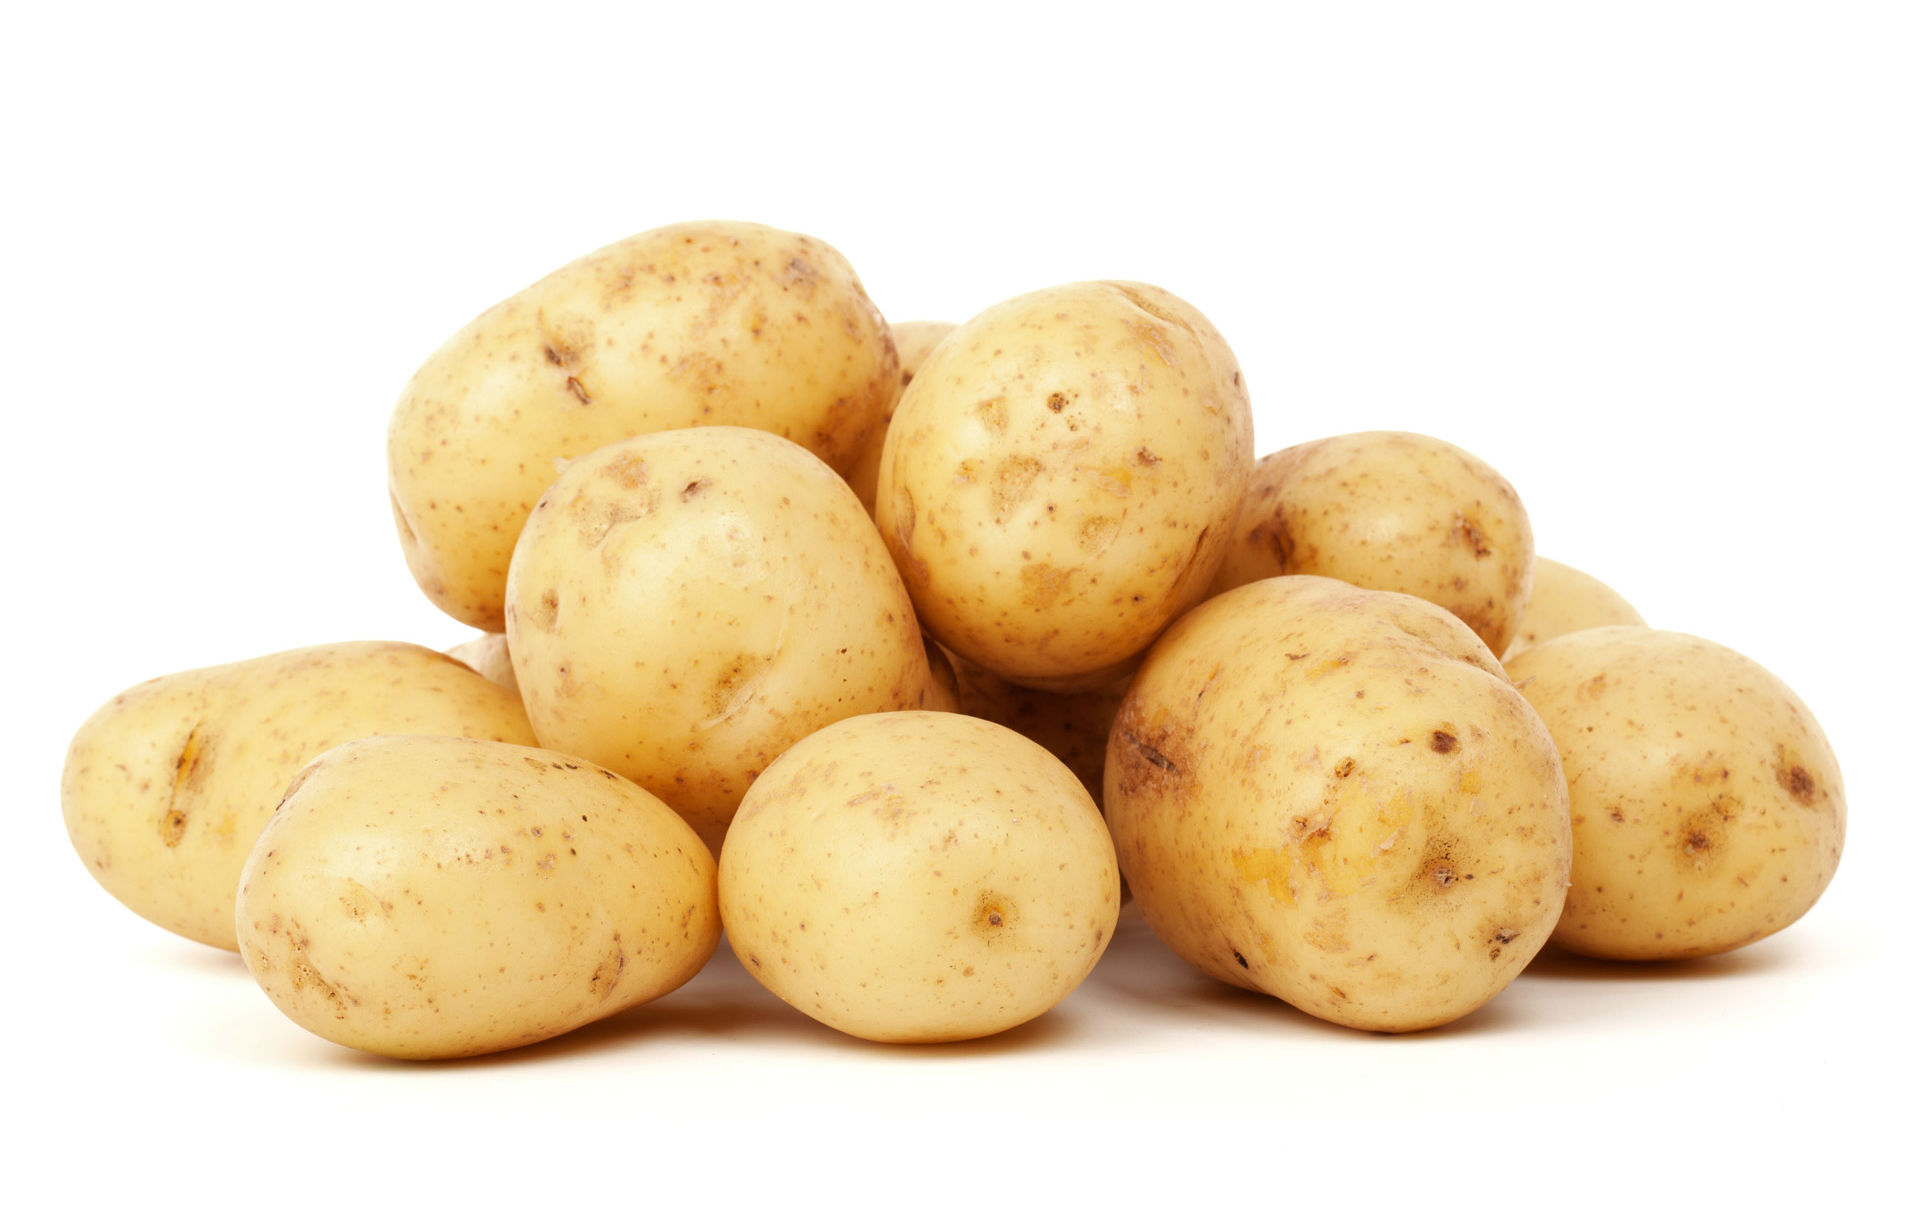 Potato Health Benefits